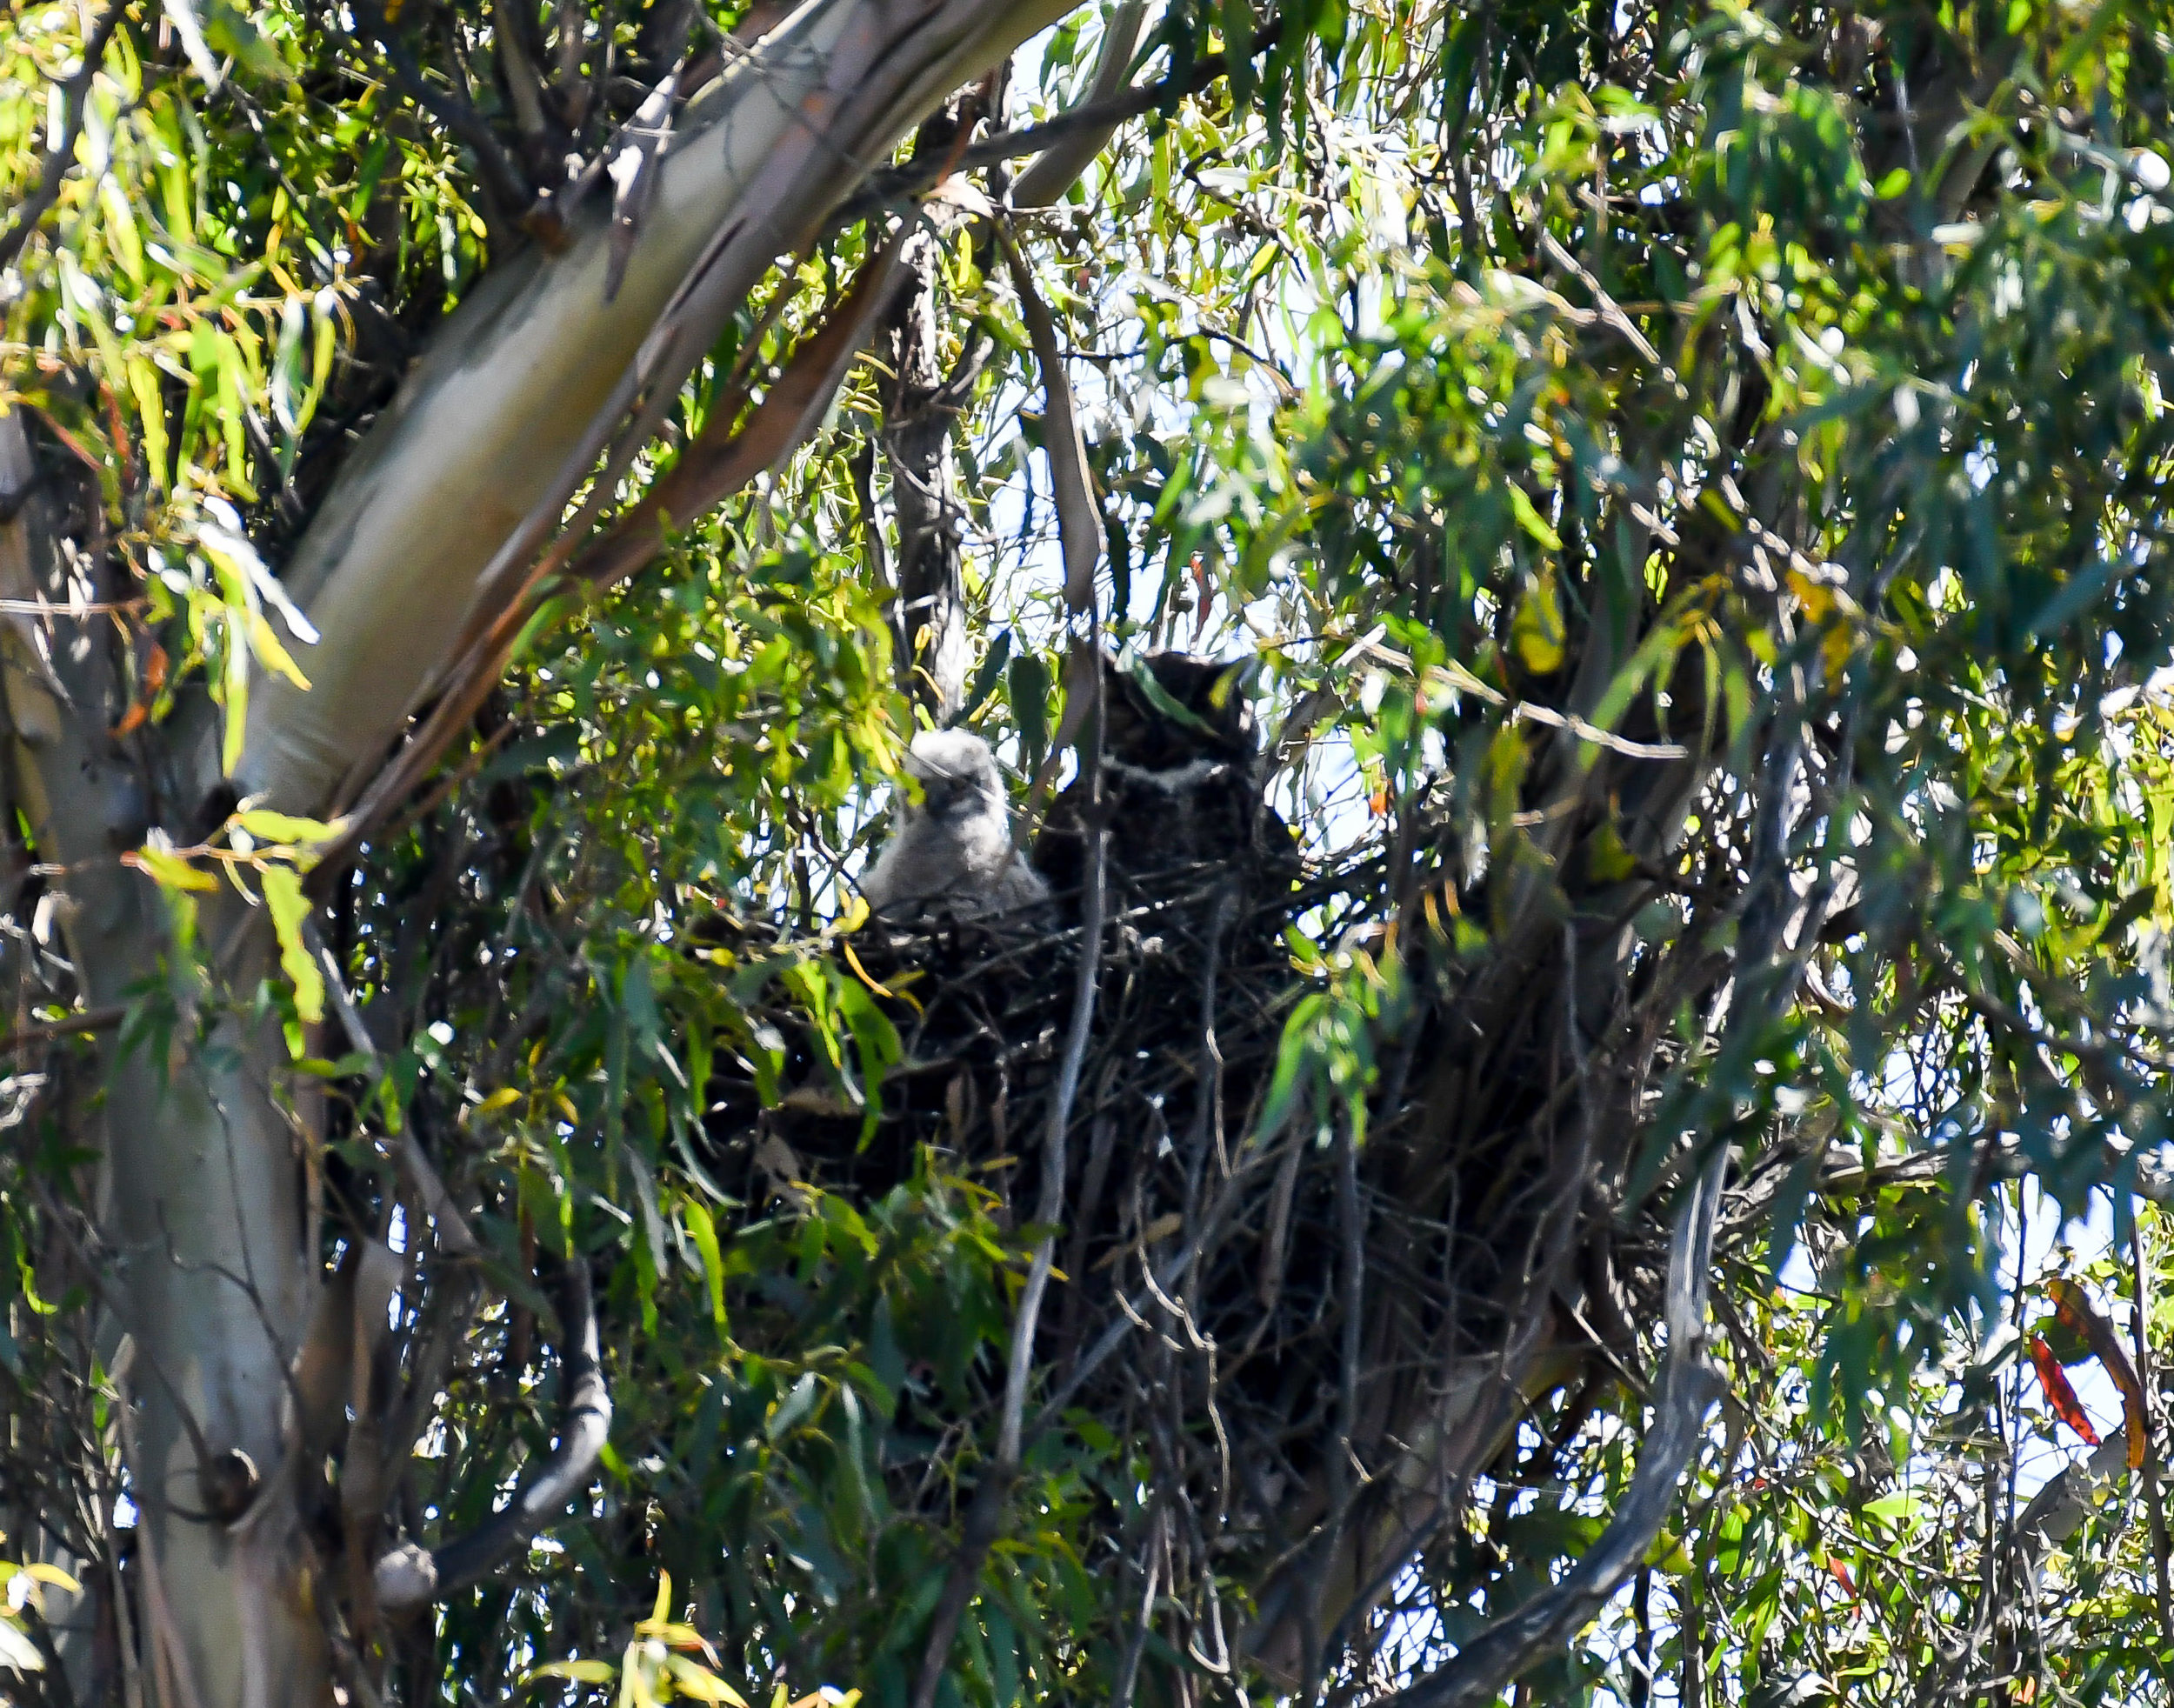 mother great horned owl with baby owl in nest.jpg